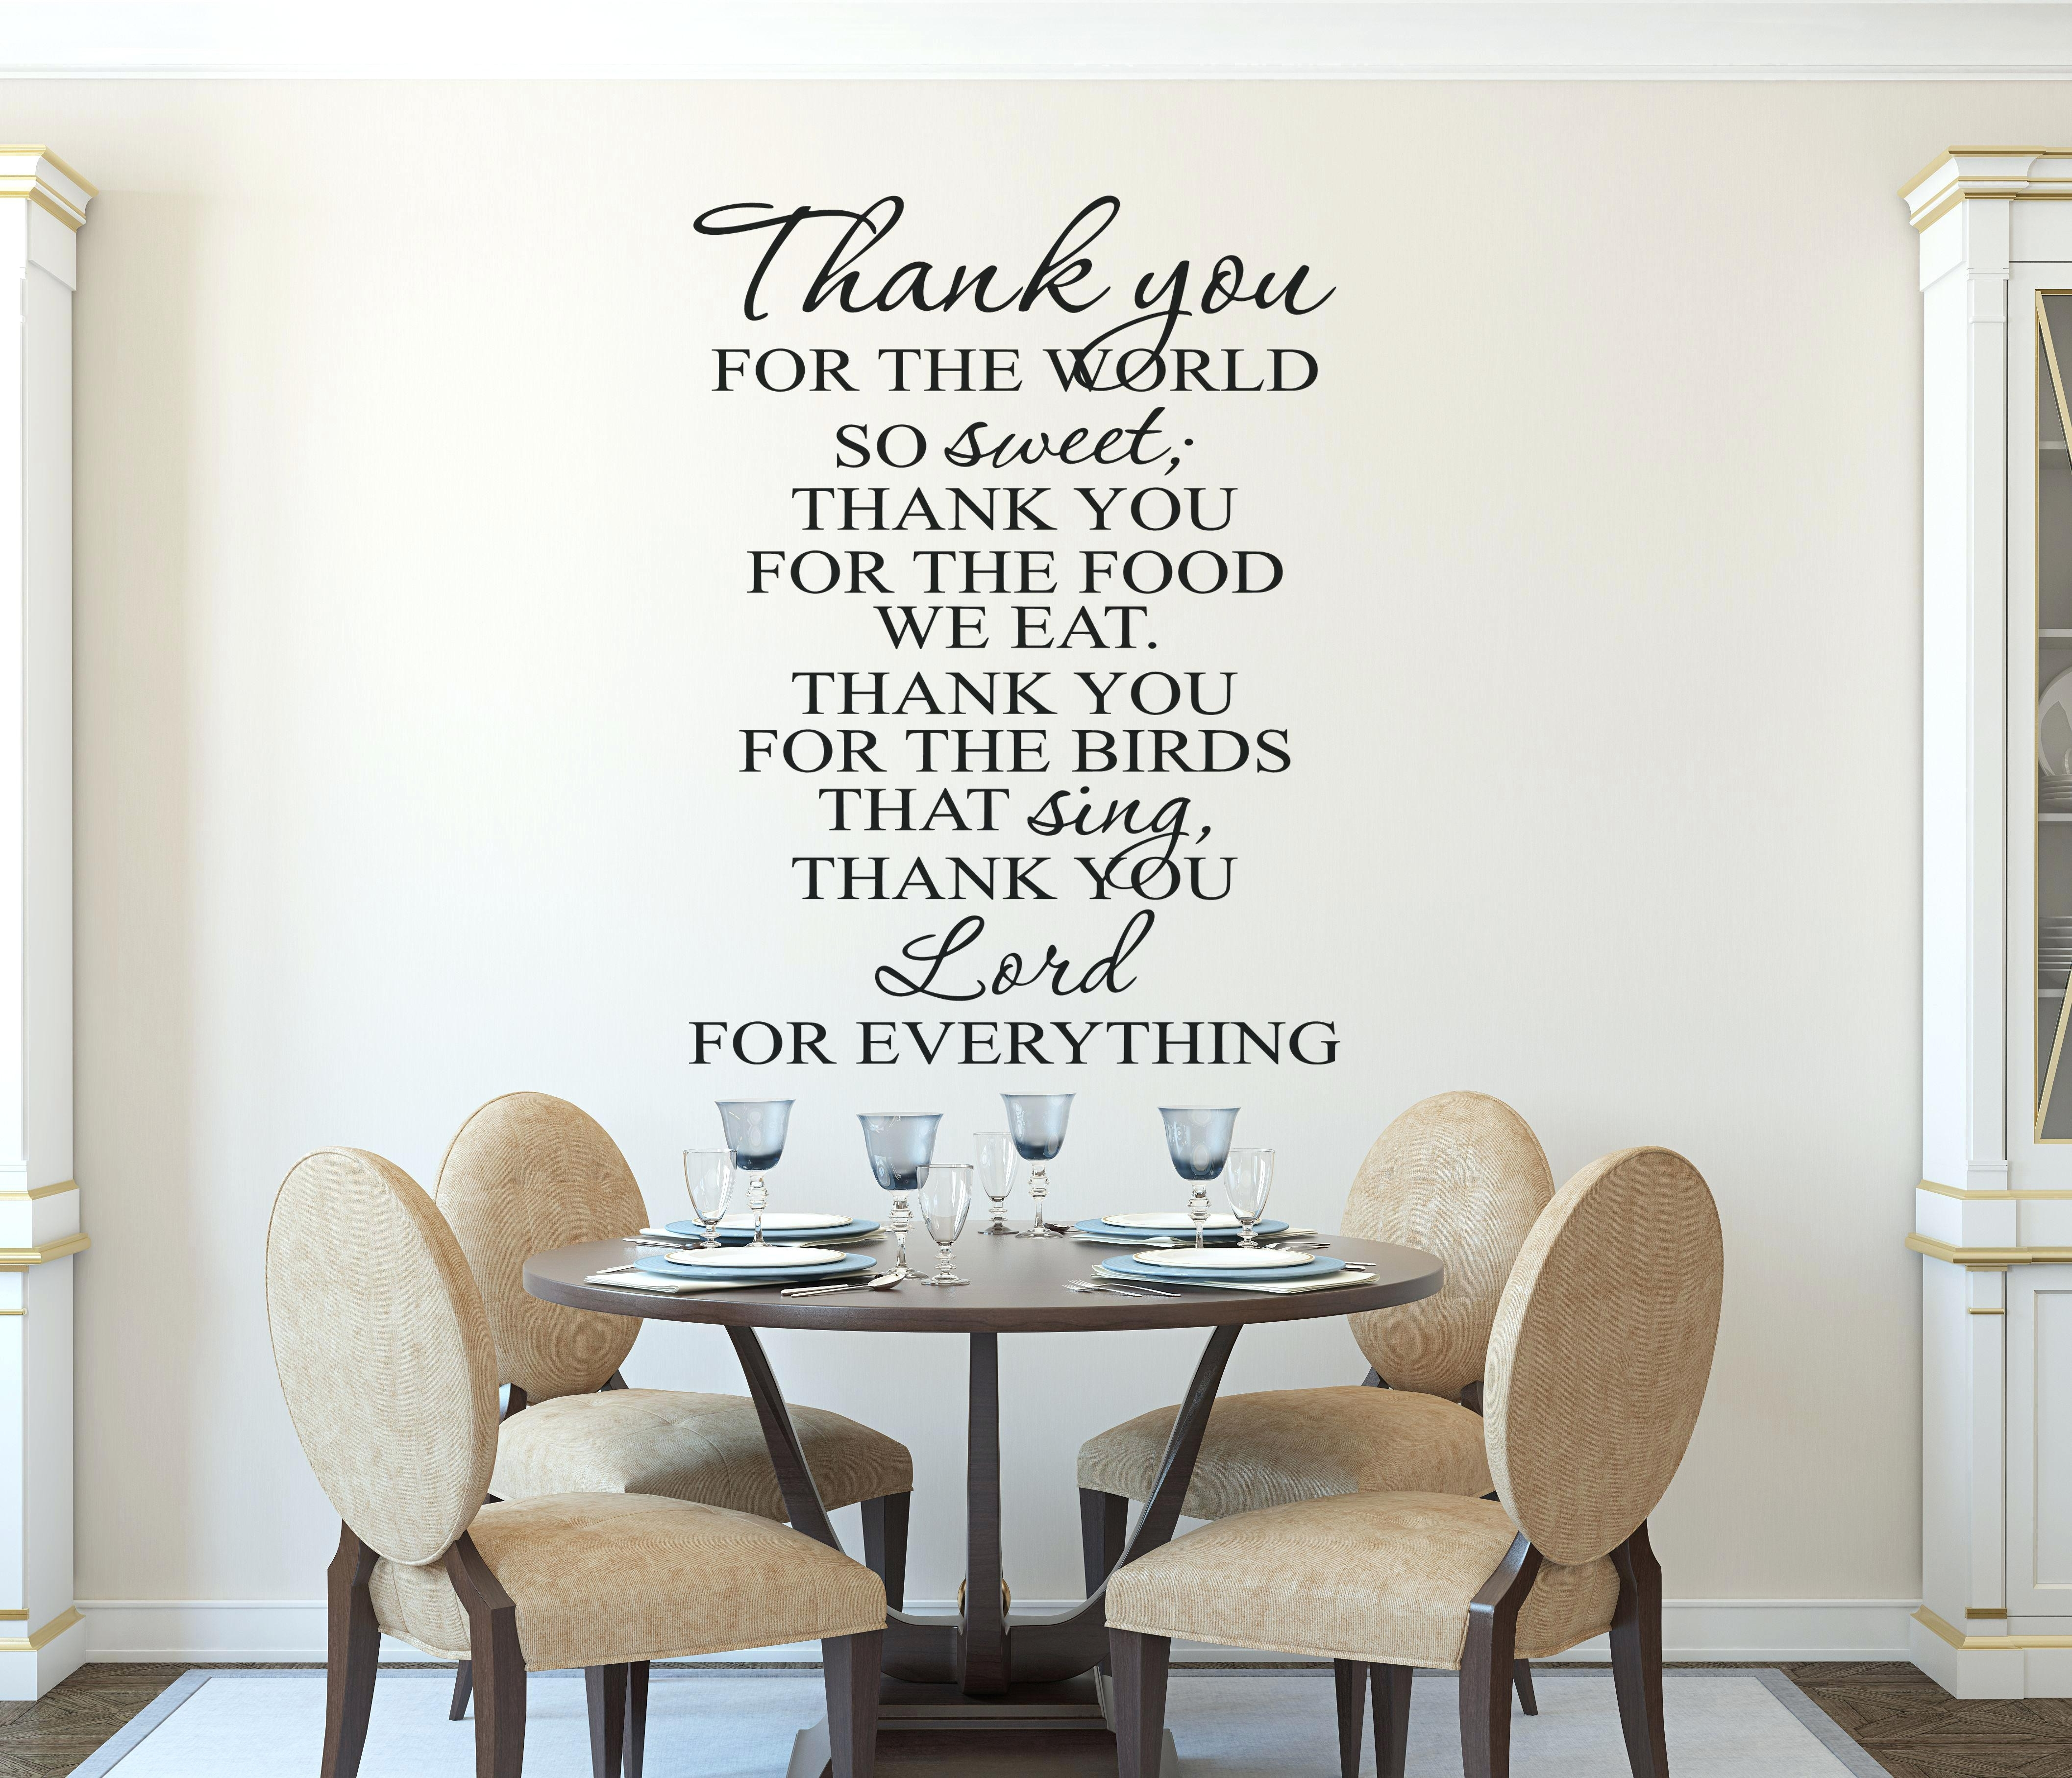 Excellent Idea Word Art For Walls Tree Wall Stickers Dezign With A Z Inside Most Popular Art For Walls (Gallery 20 of 20)